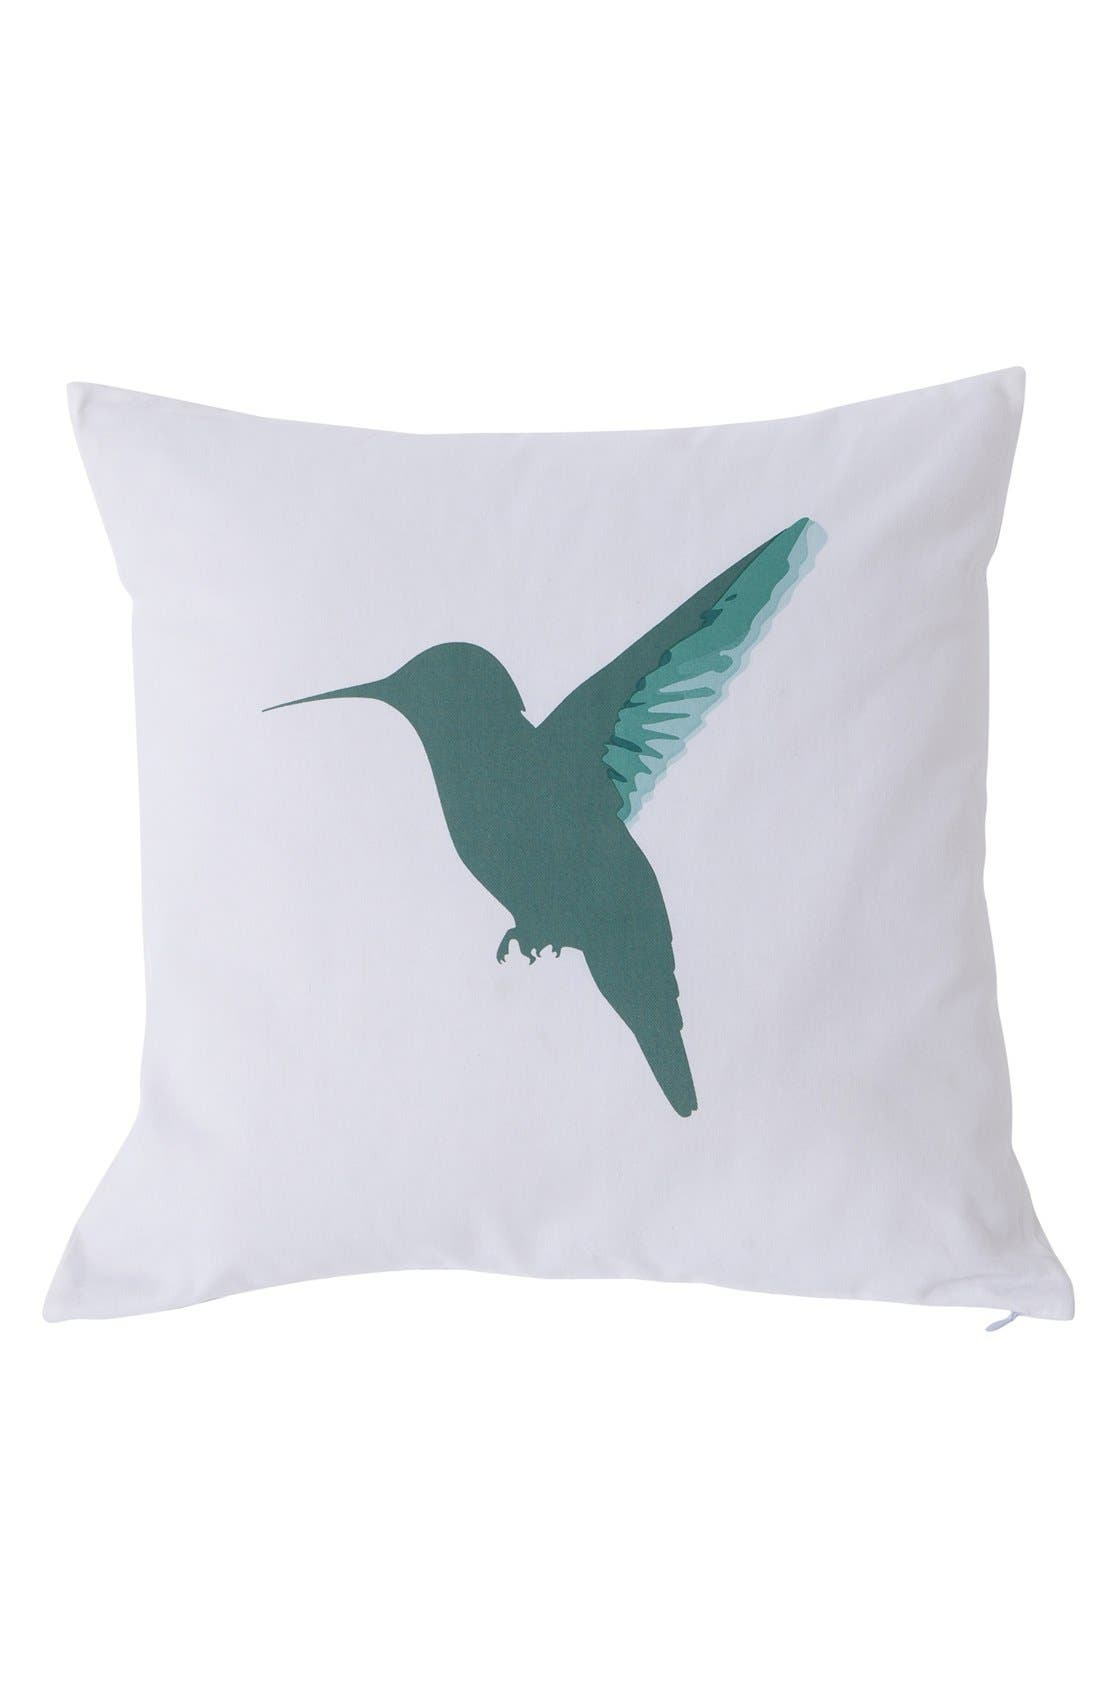 Reversible Hummingbird Pillow,                         Main,                         color, White/ Green/ Spice